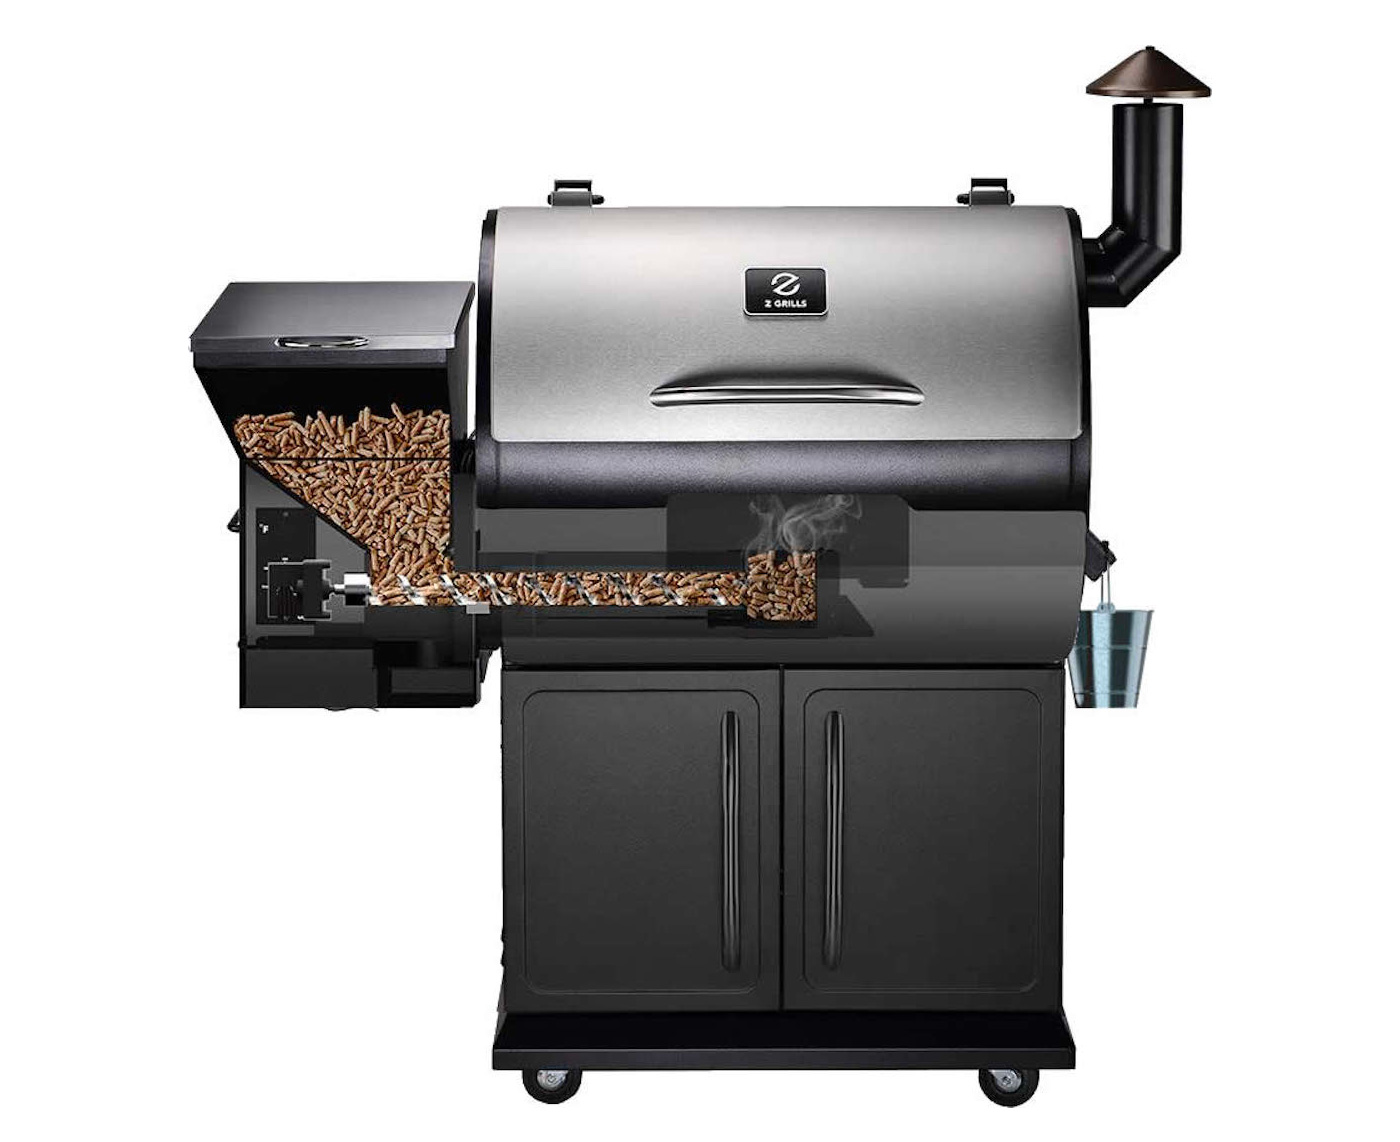 Real Wood Flavor: Pellet-Fired Z Grills at werd.com